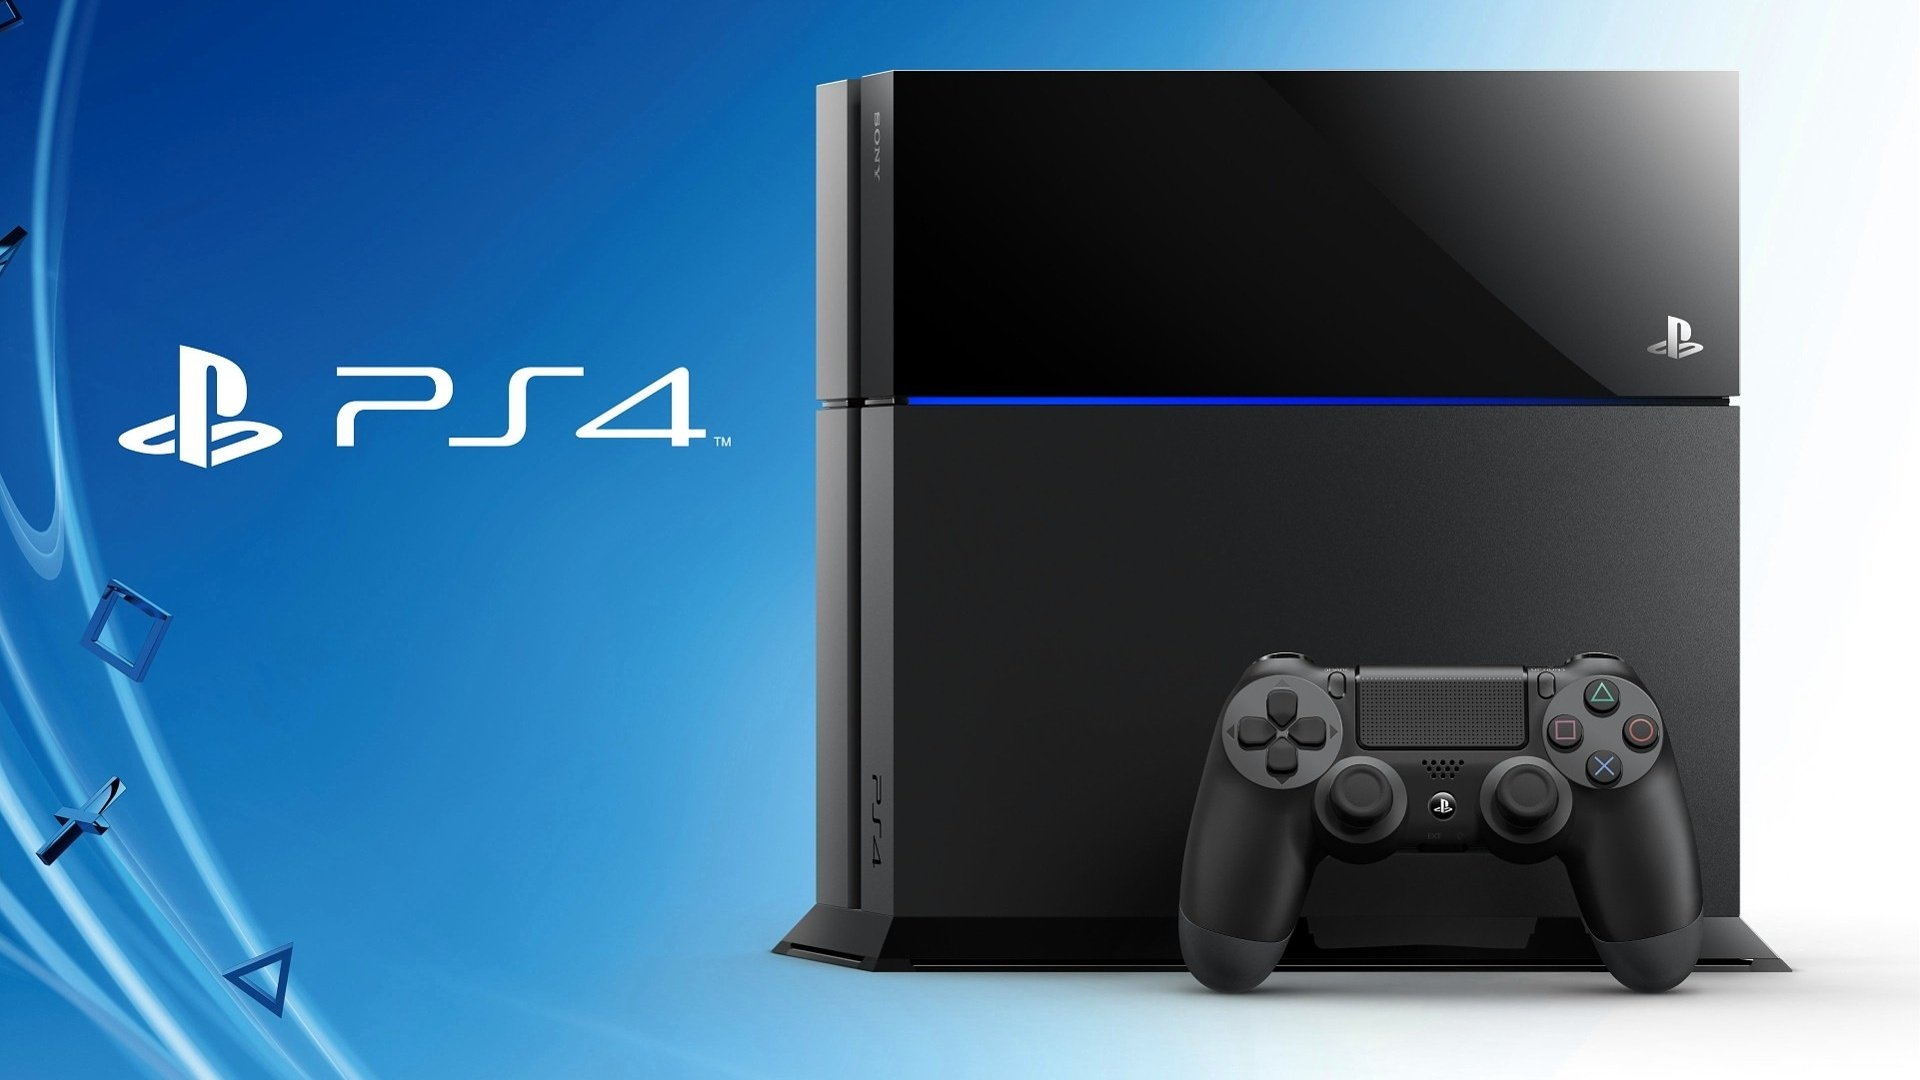 Gaming Deals: Get a PS4, a Free Game, and 6 Months of PlayStation Plus for $360